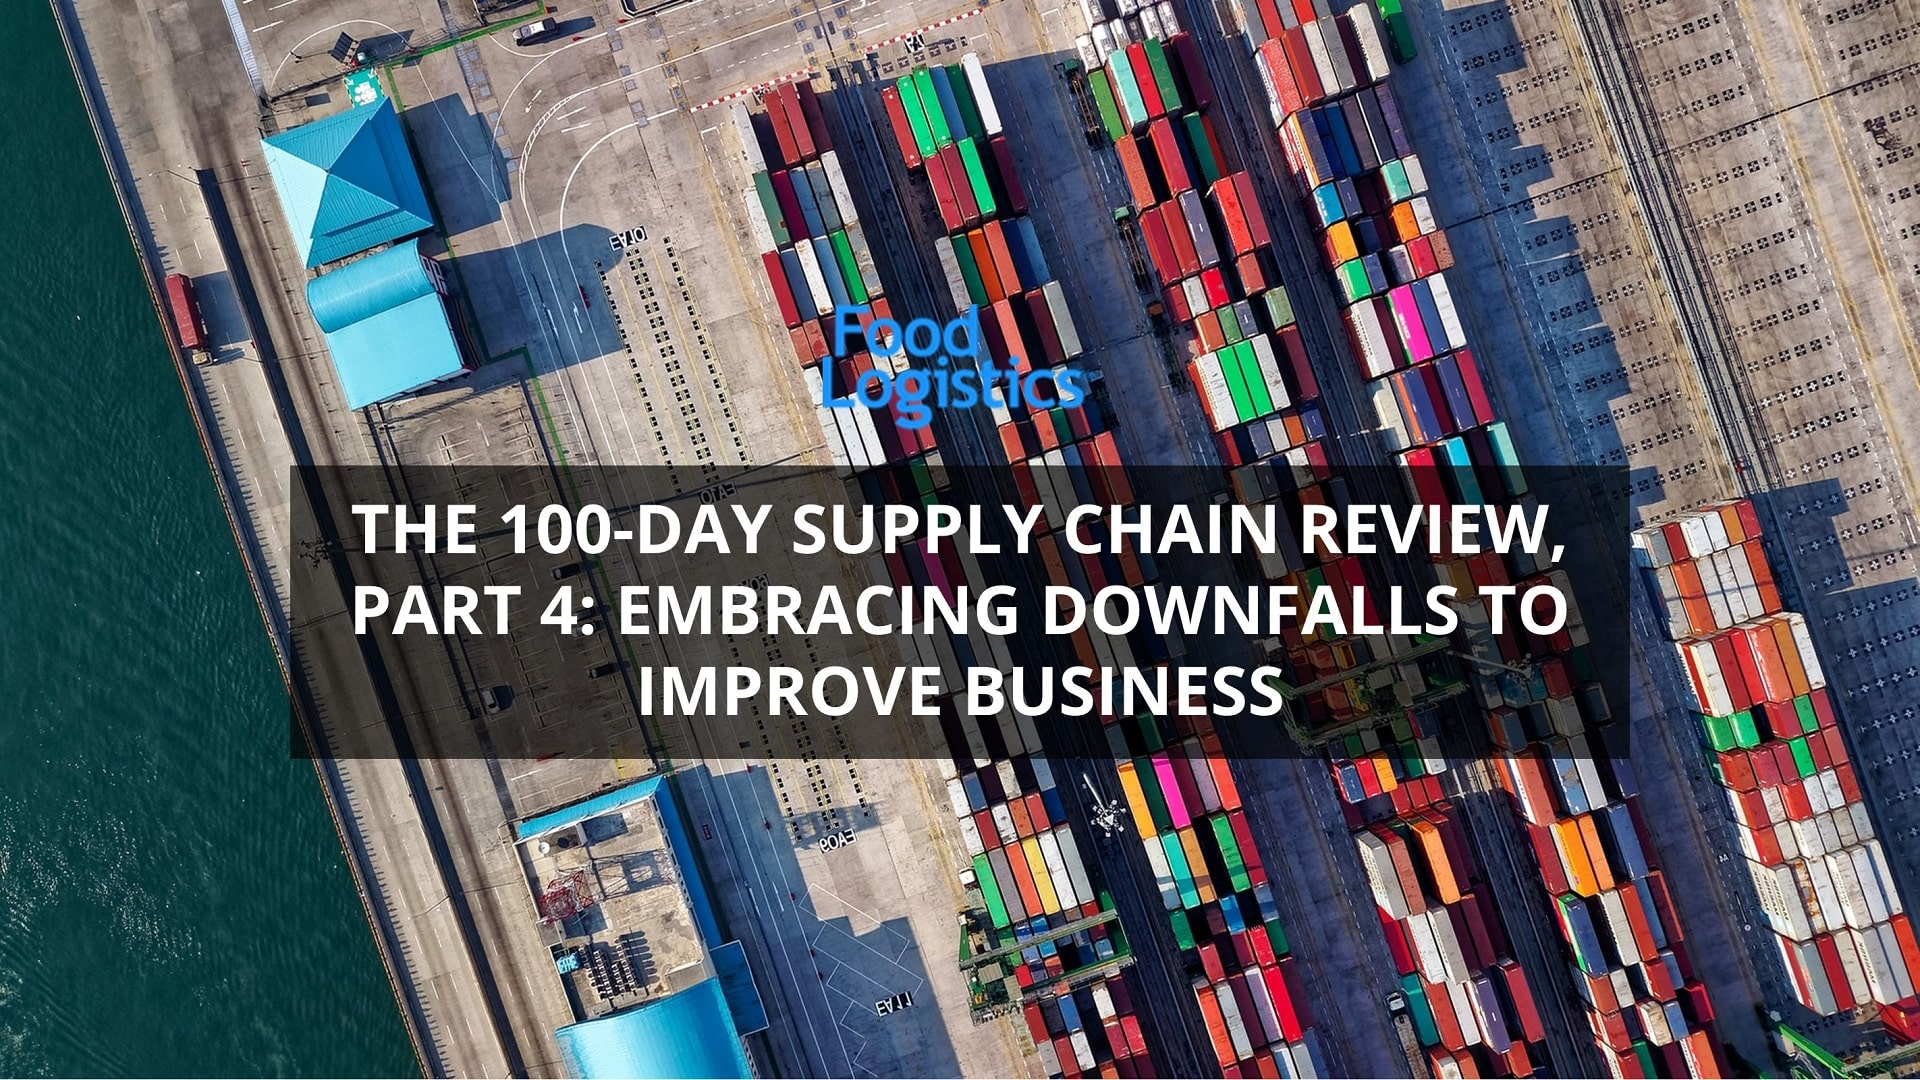 US Supply Chain Review - Embracing Downfalls